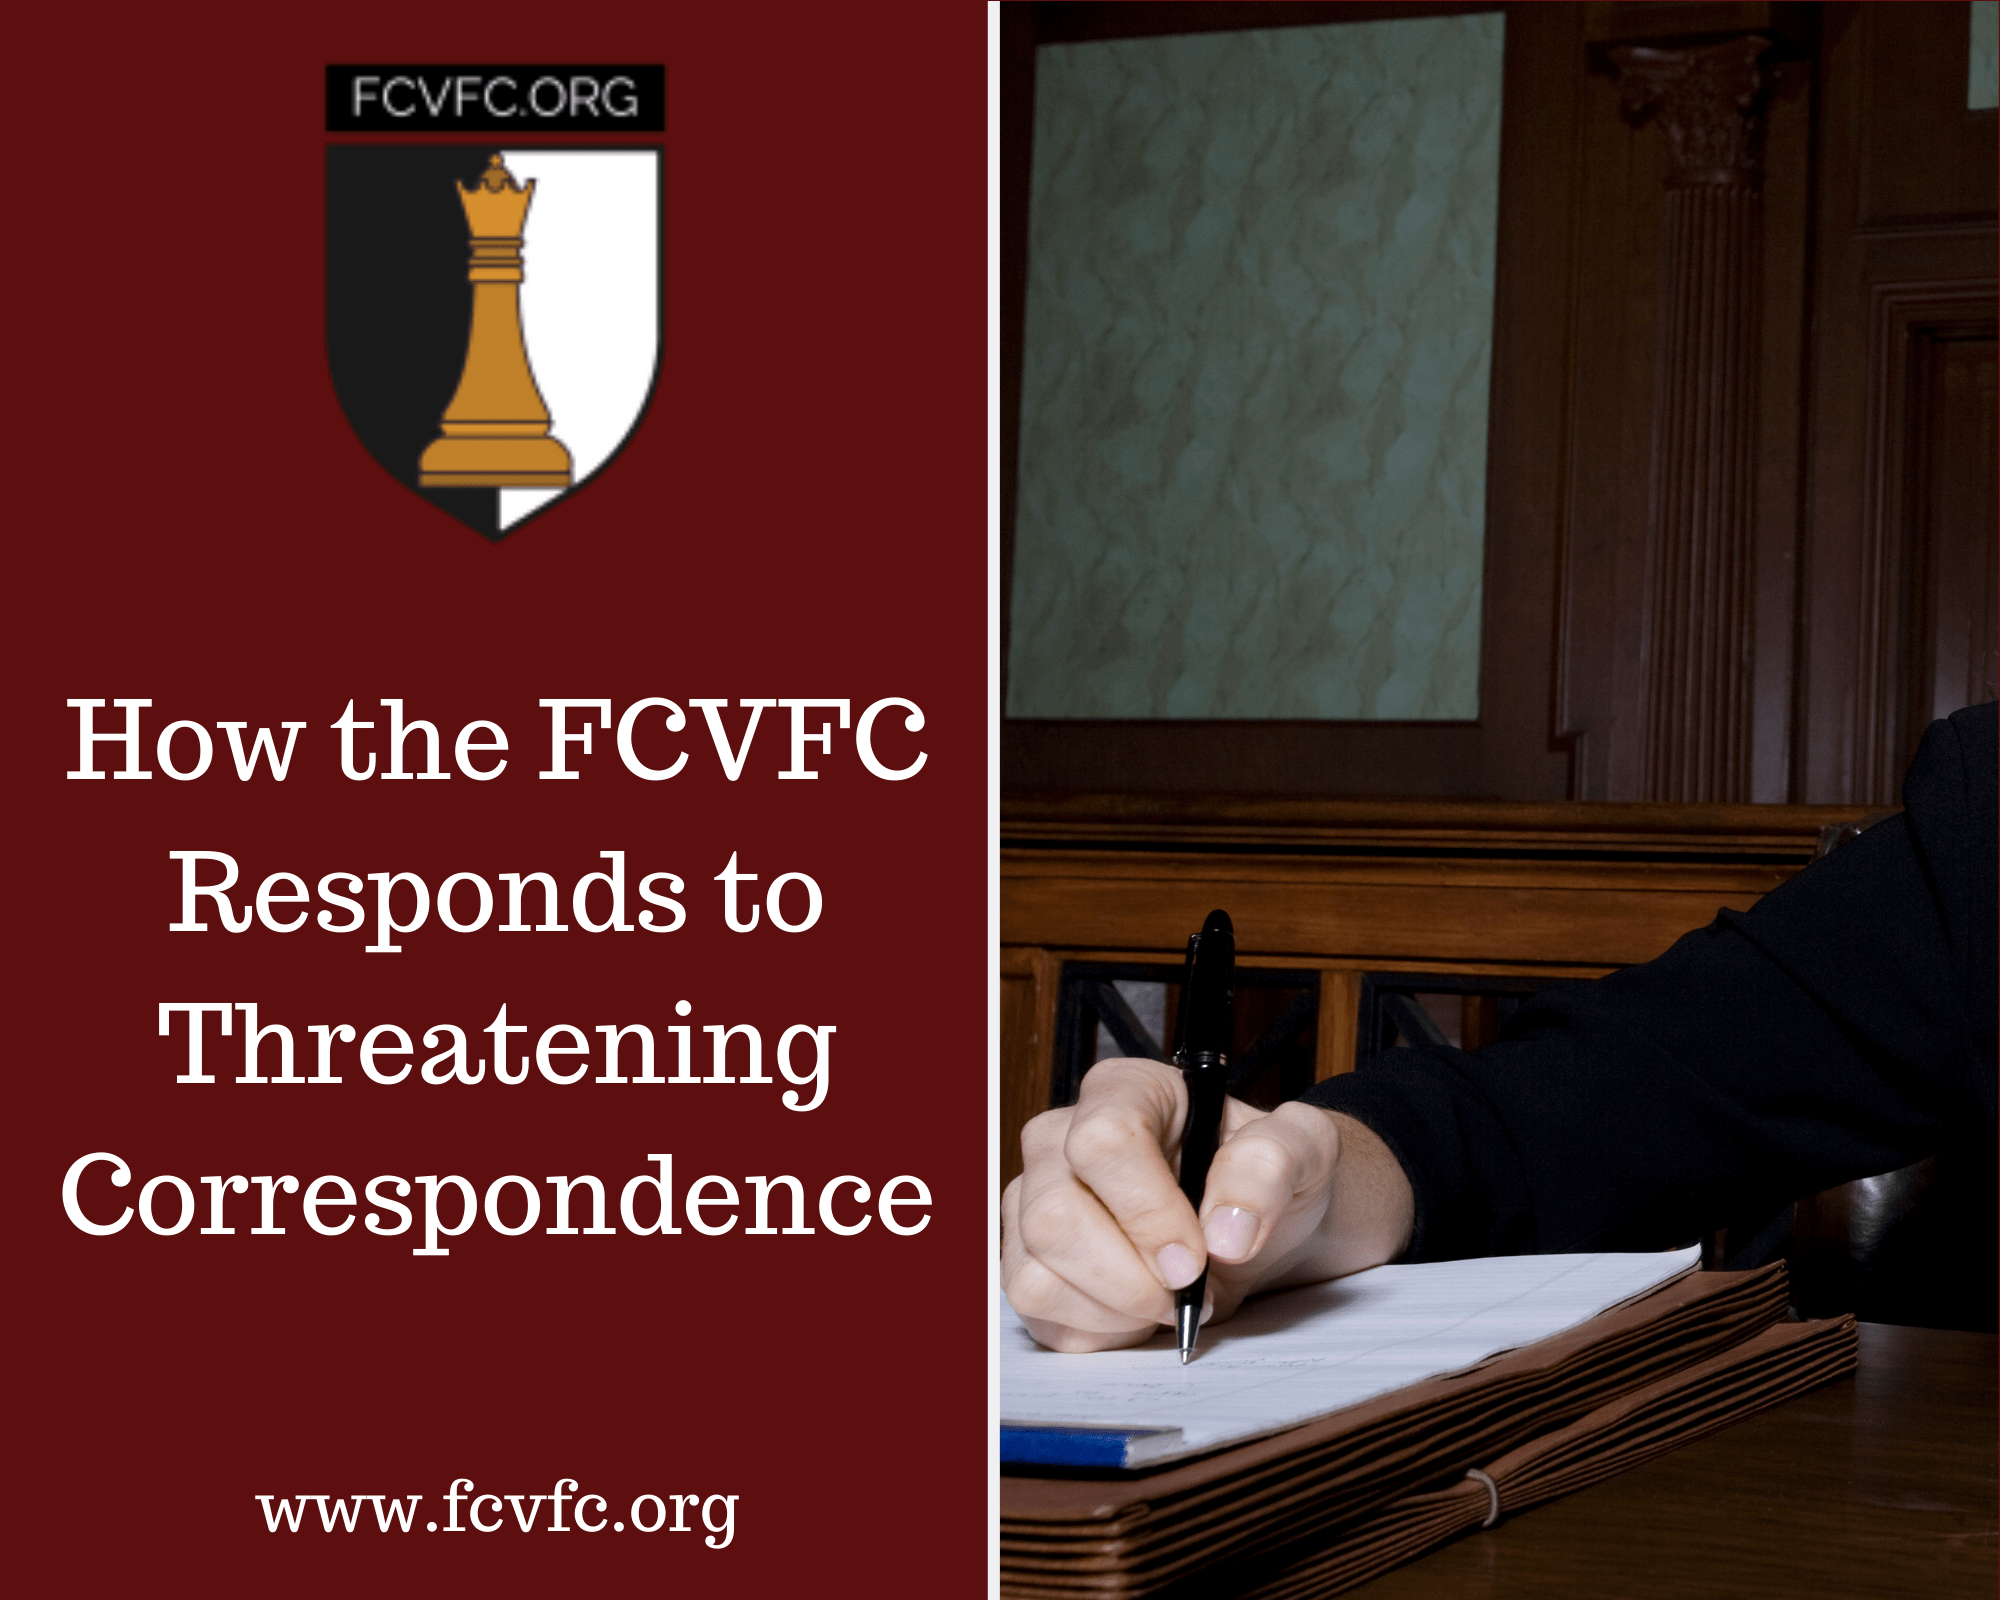 How the FCVFC Responds to Threatening Correspondence